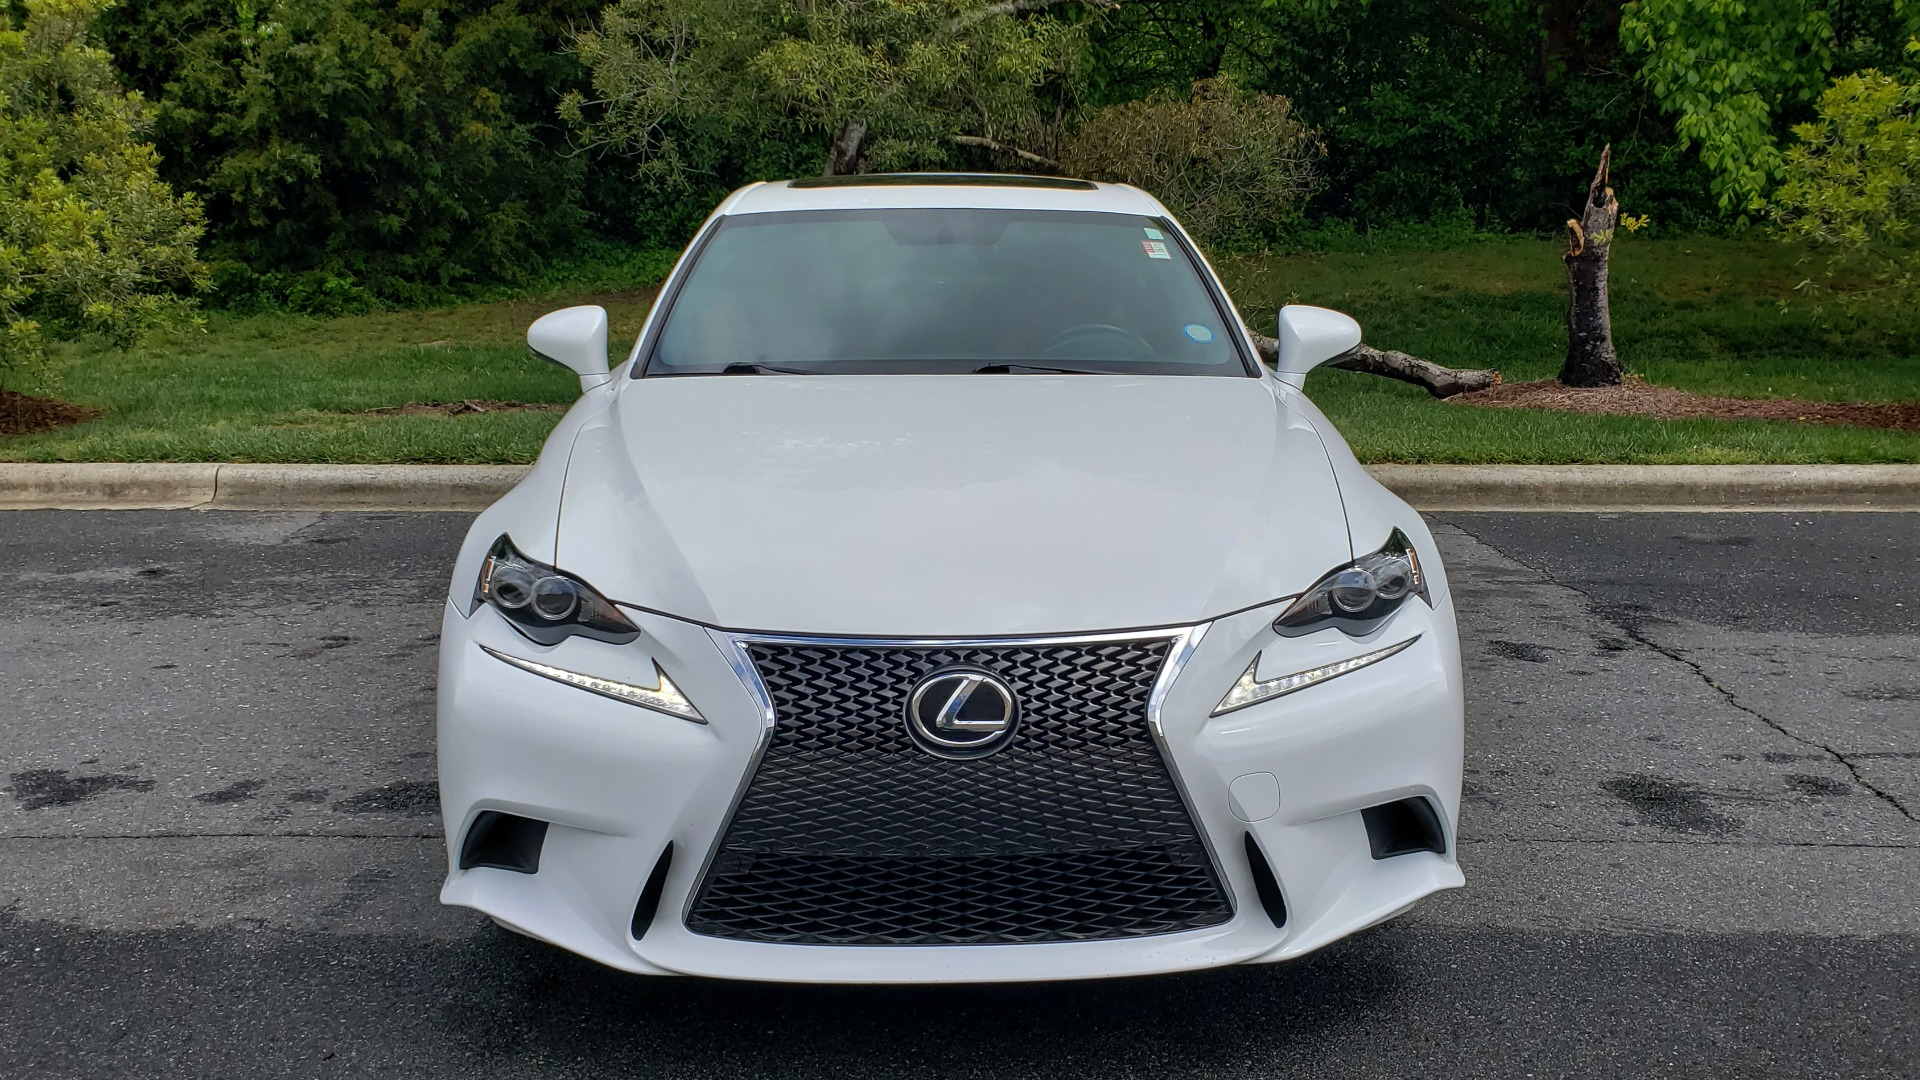 Used 2014 Lexus IS 350 F-SPORT / NAV / SUNROOF / REARVIEW / BSM / MARK LEV SND for sale Sold at Formula Imports in Charlotte NC 28227 18